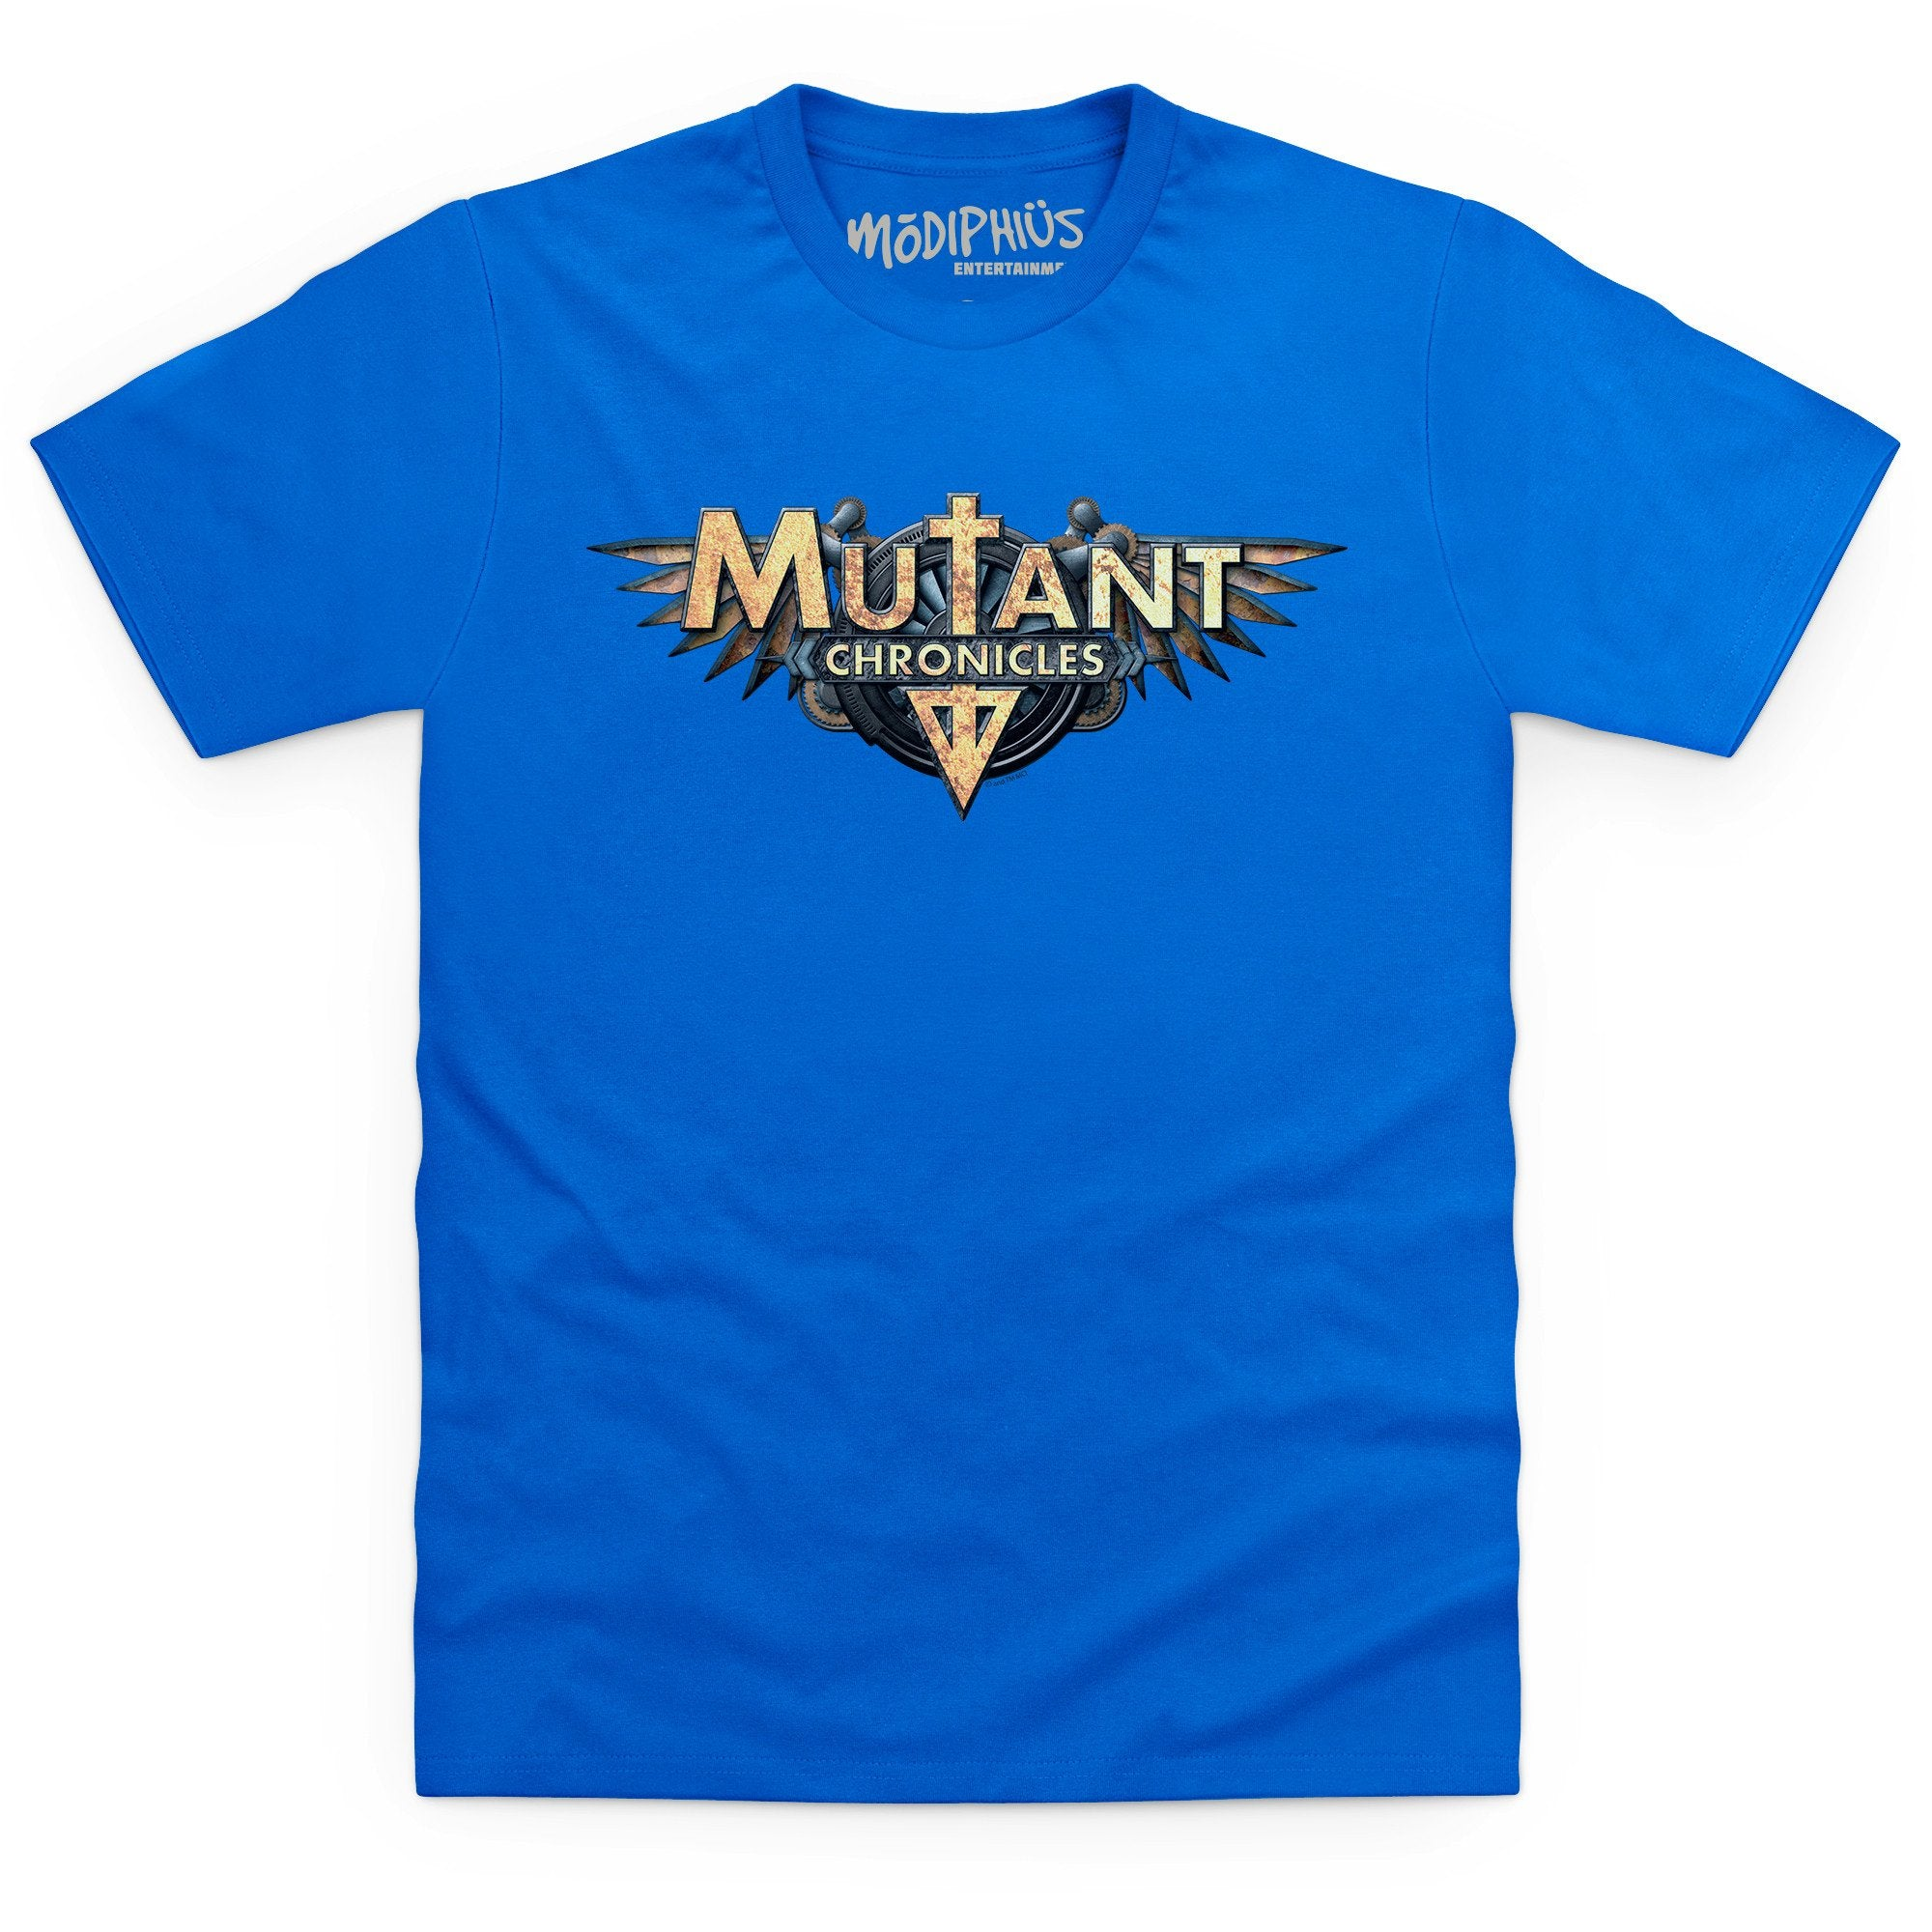 Mutant Chronicles t-shirt